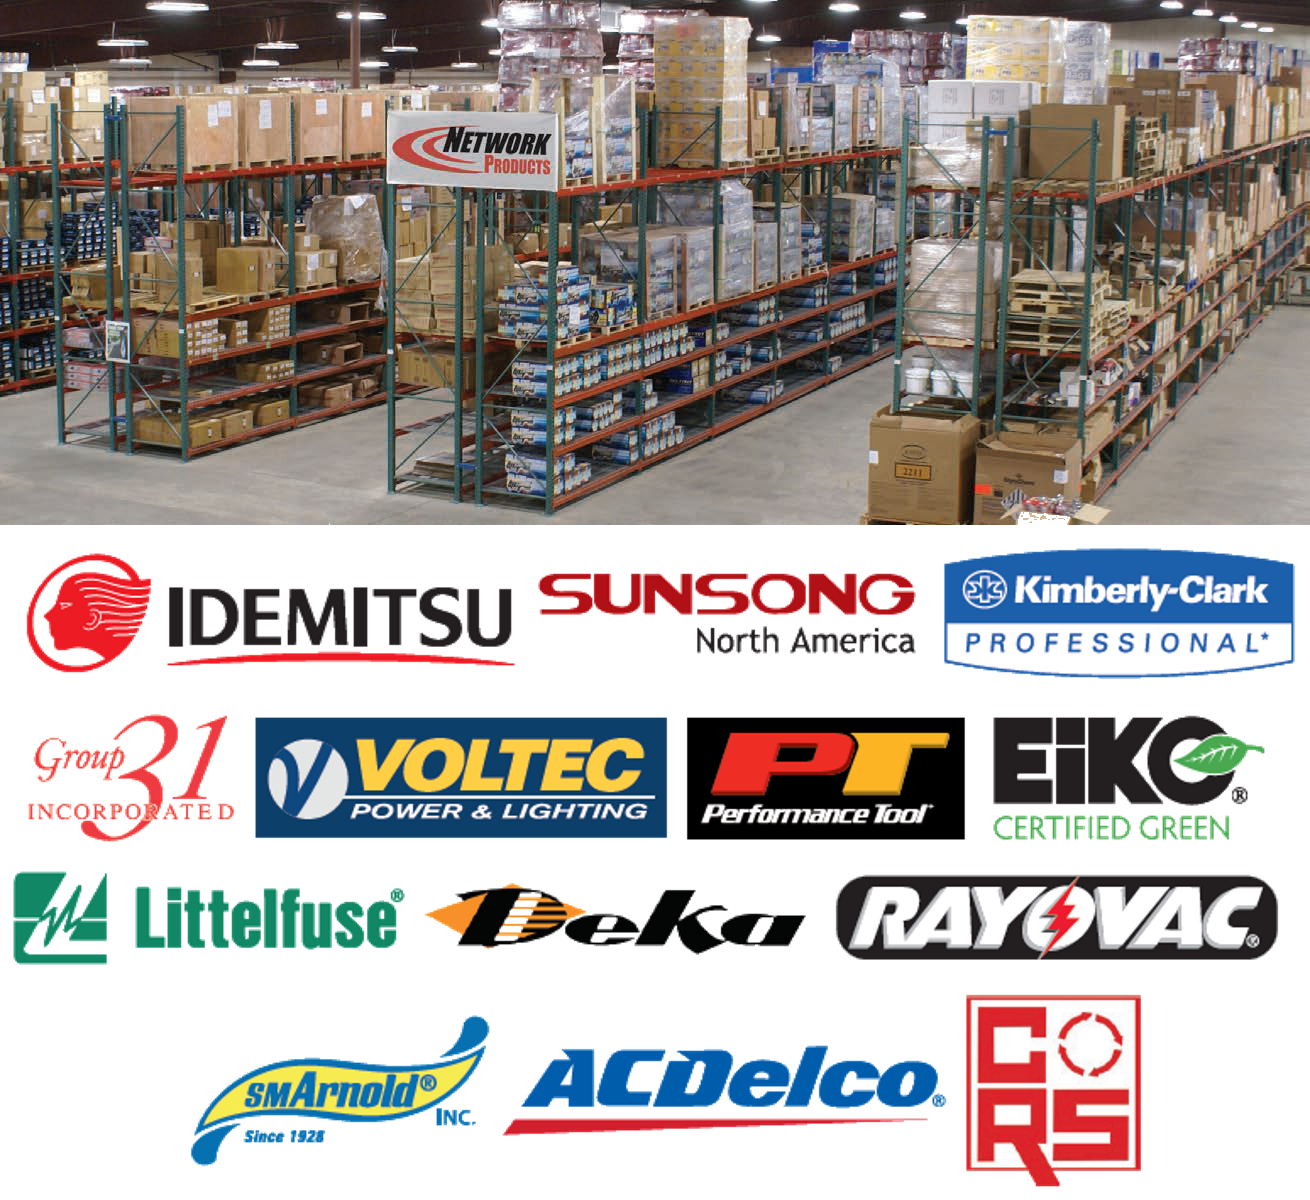 Network Products Warehouse Composite Image